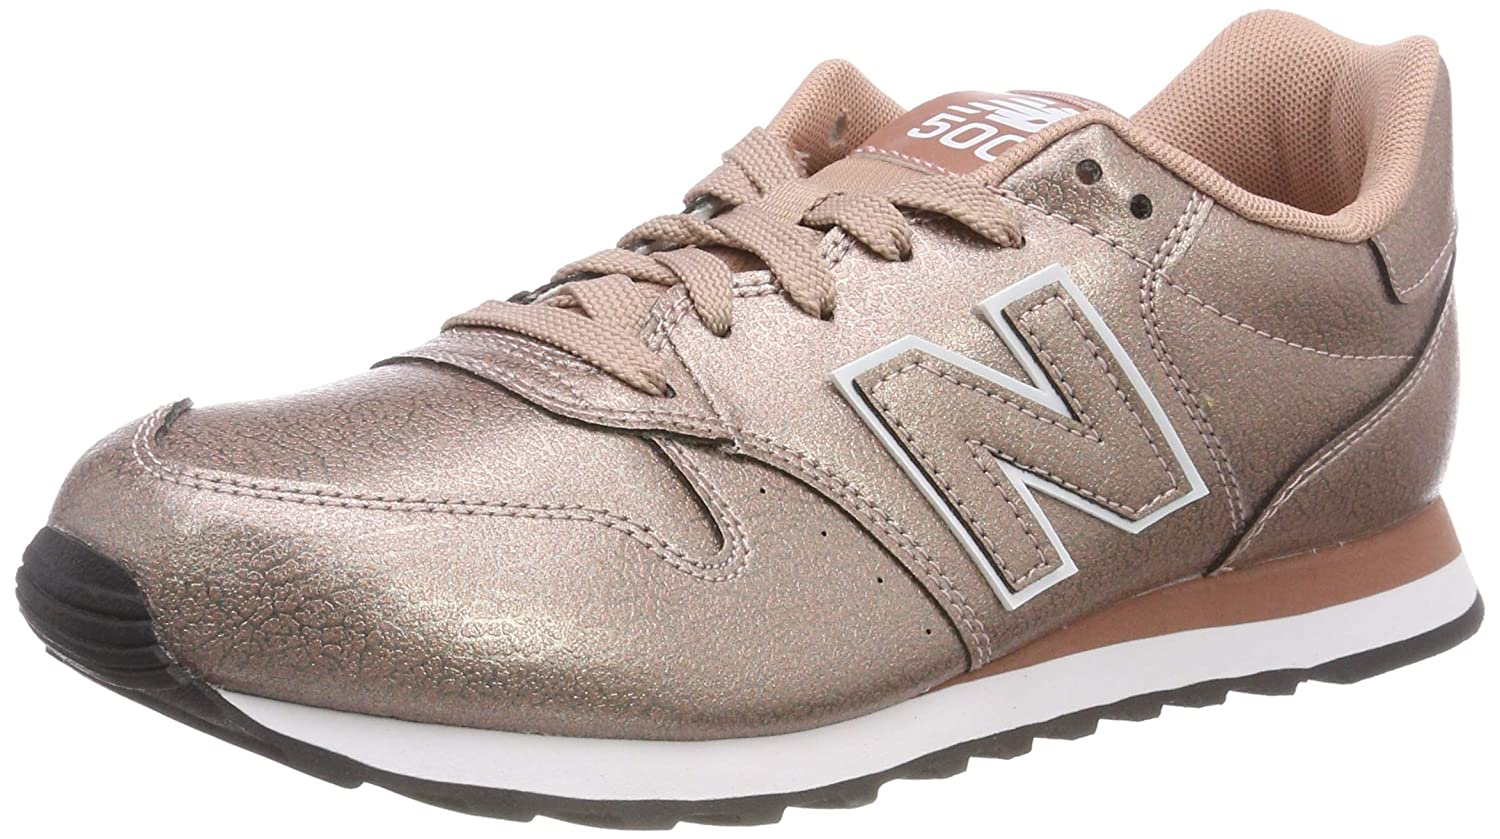 New Balance 500, Zapatillas para Mujer 37.5 EU|Rosa (Metallic Rose Gold/Metallic Rose Gold Mtb)